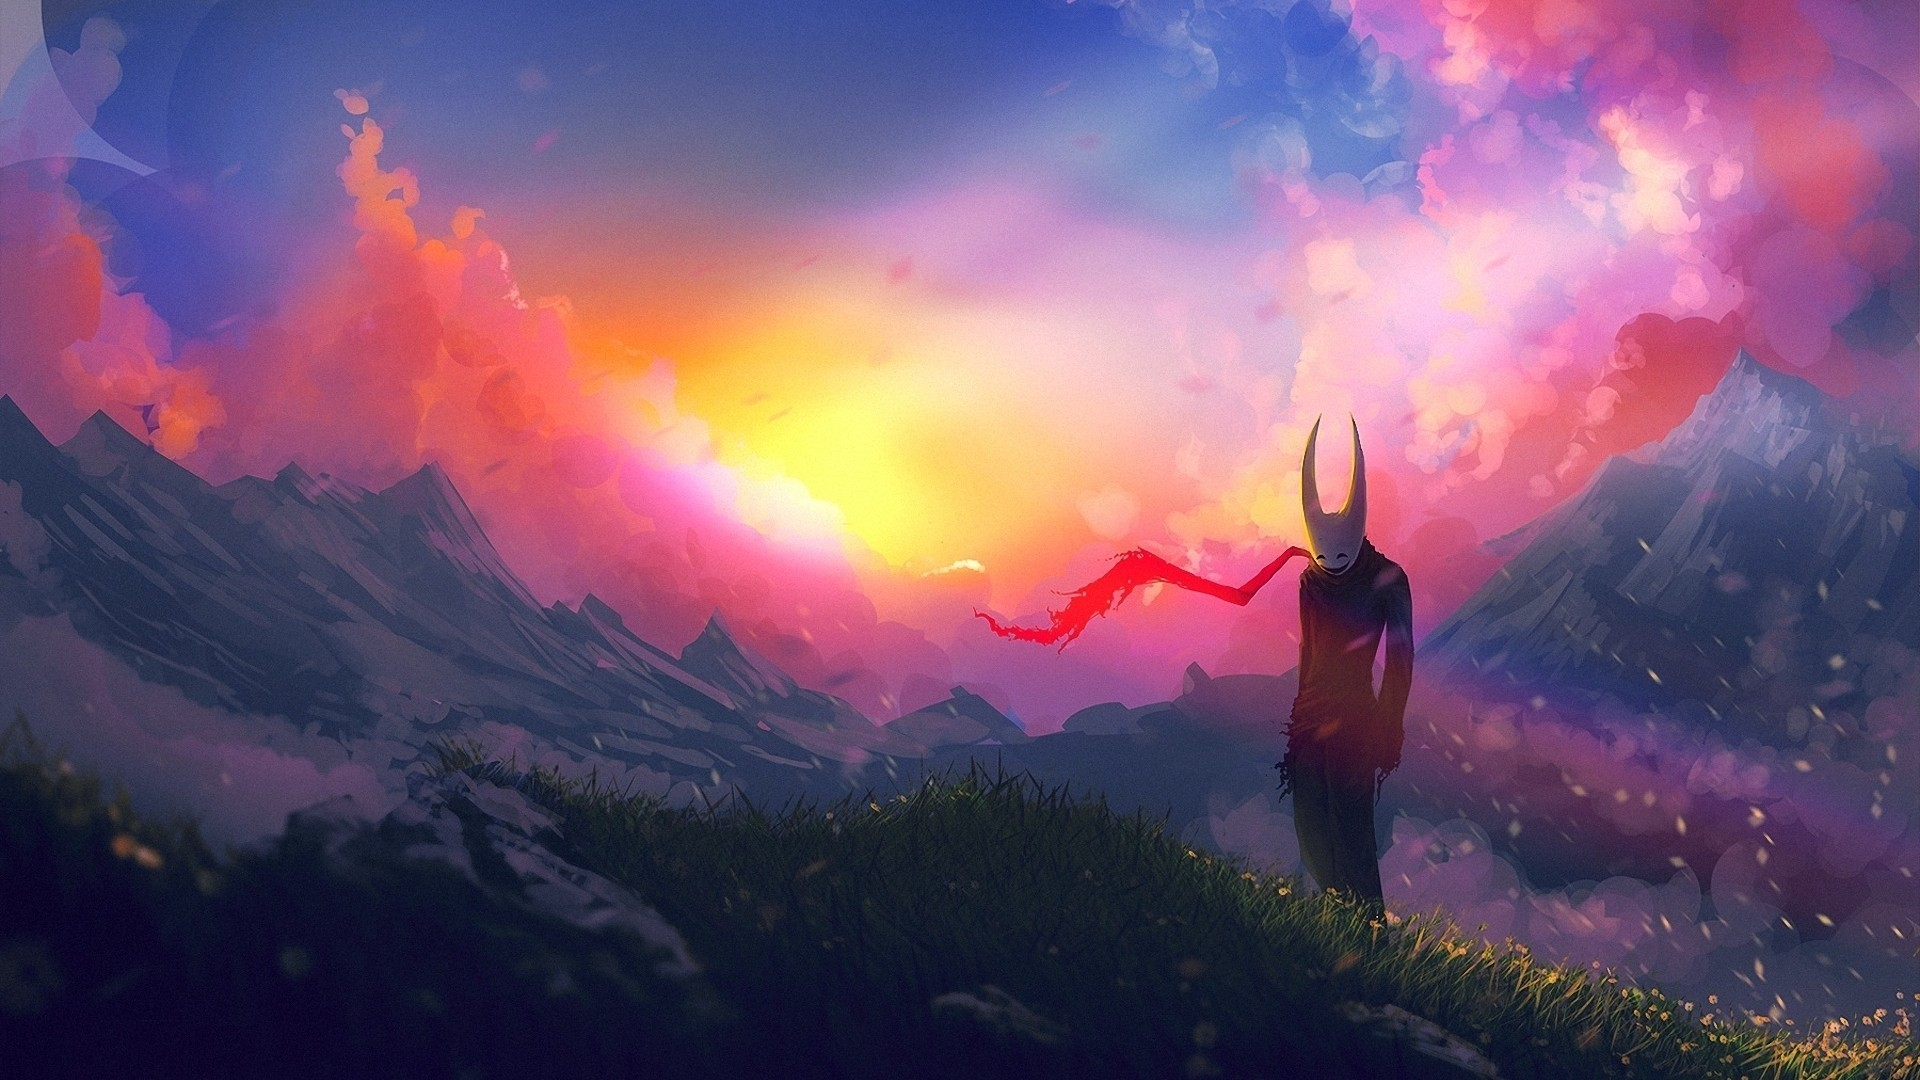 605; anime-wallpapers. Published on March 27, 2016 | Original Resolution:  …